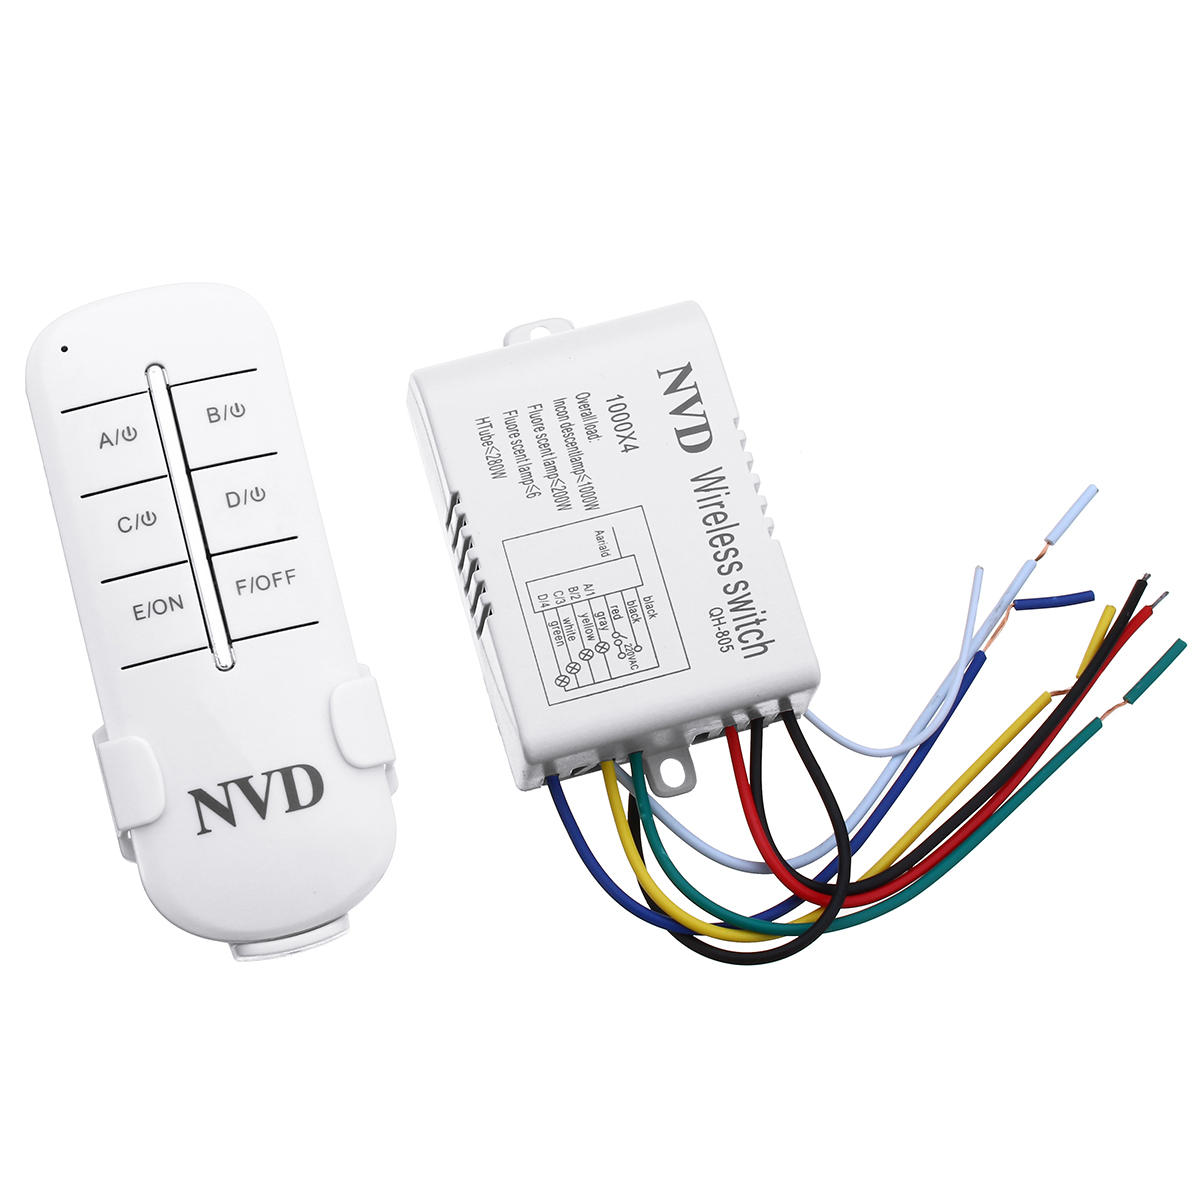 Led 220v 1000w 220v Four Way Intelligent Remote Control Switch Led Lamp Wireless Remote Control Switch